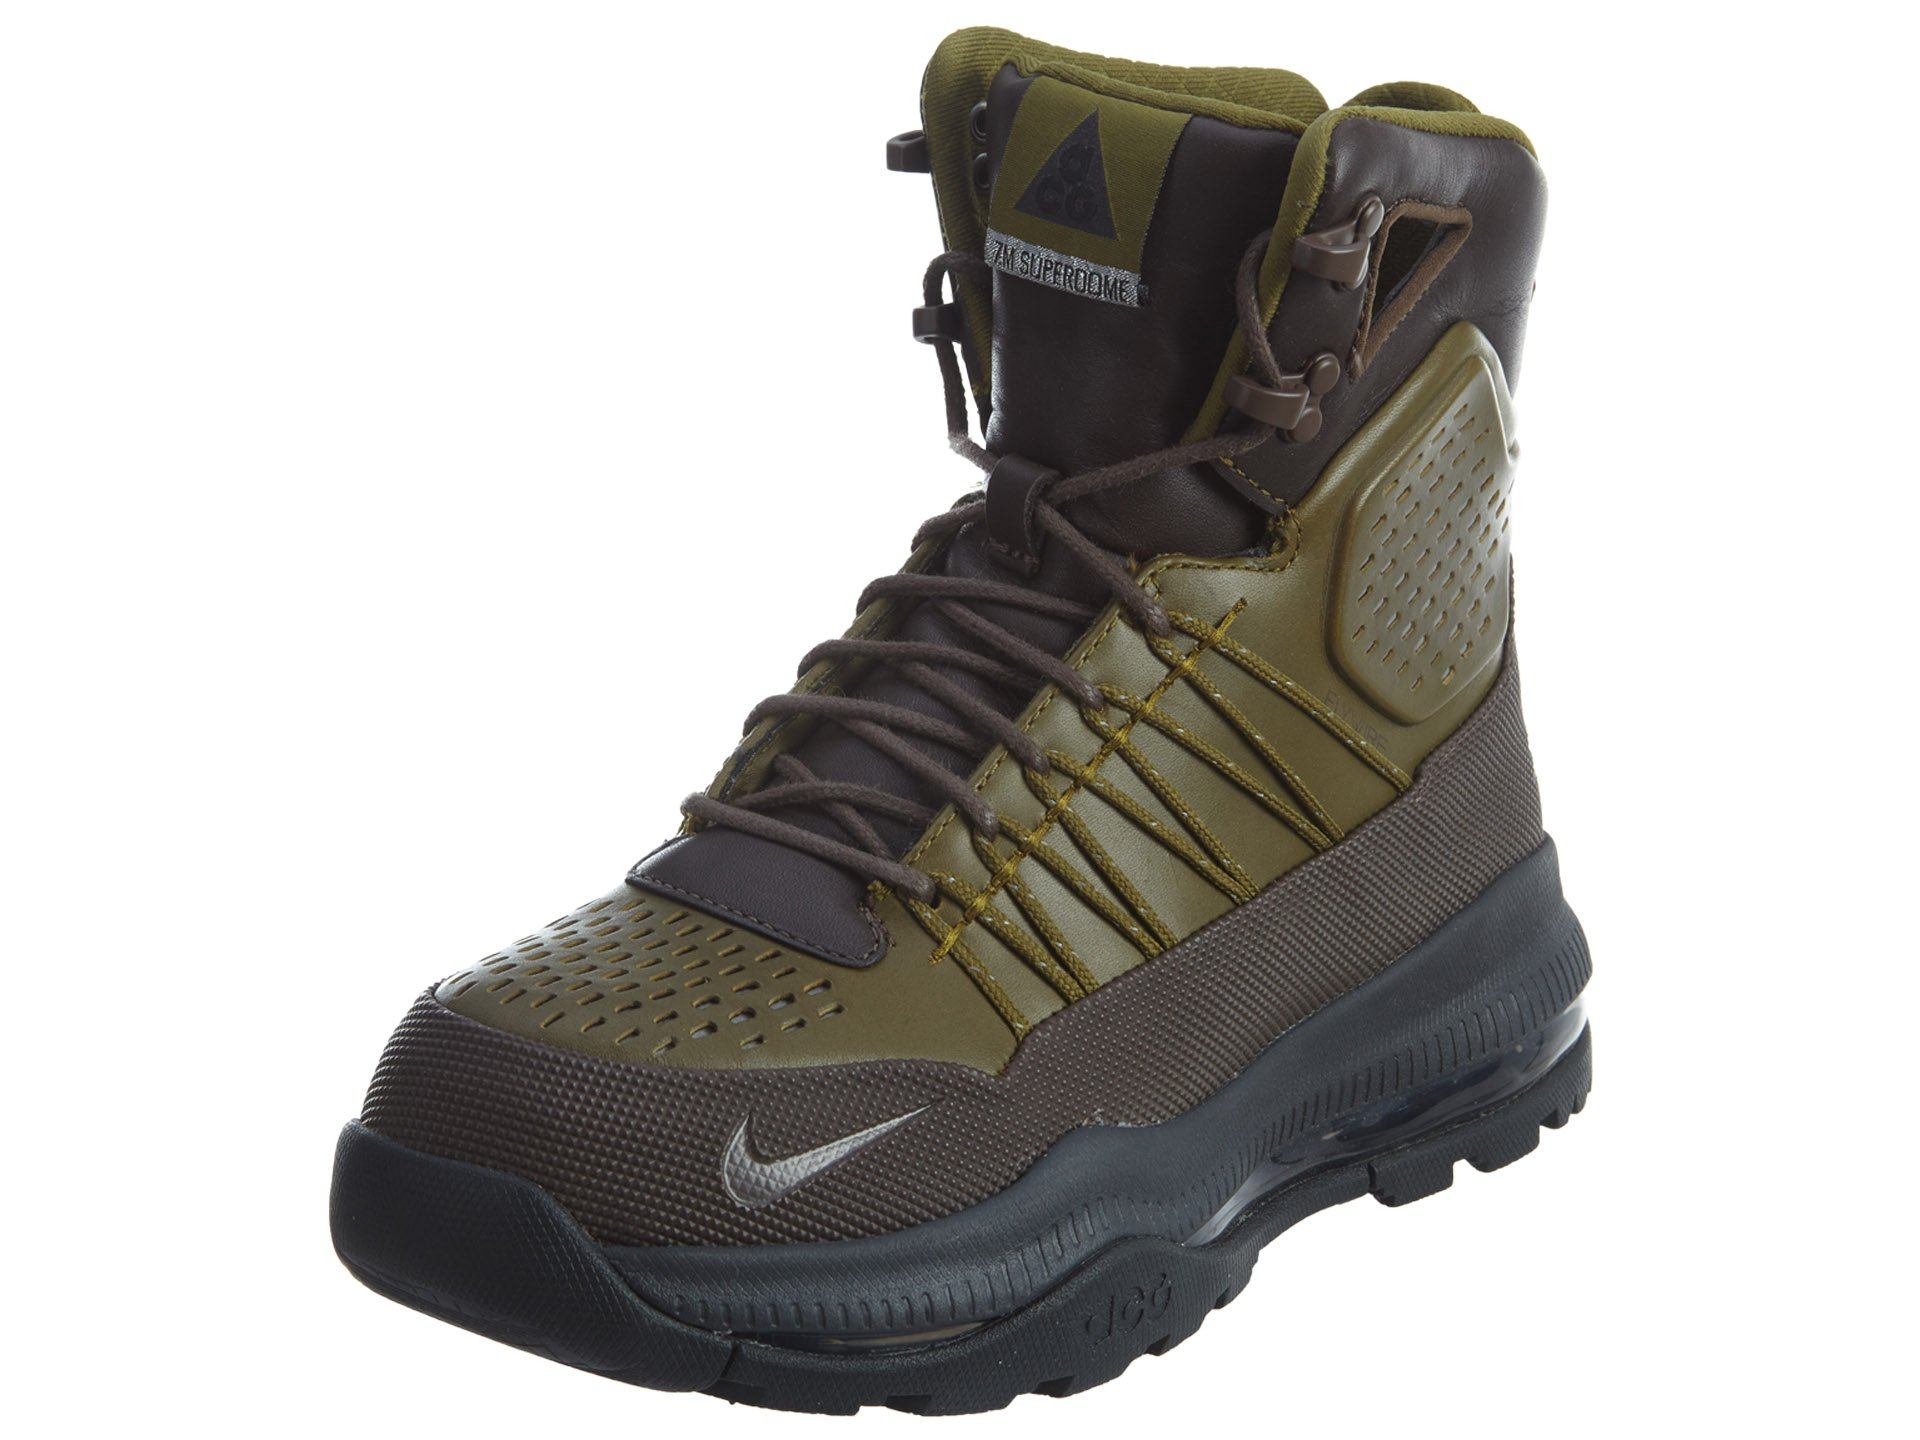 Nike Zoom Superdome Men's Boots (8.5, SPORT RED/TEAM RED/COOL GREY/METALLIC SILVER)